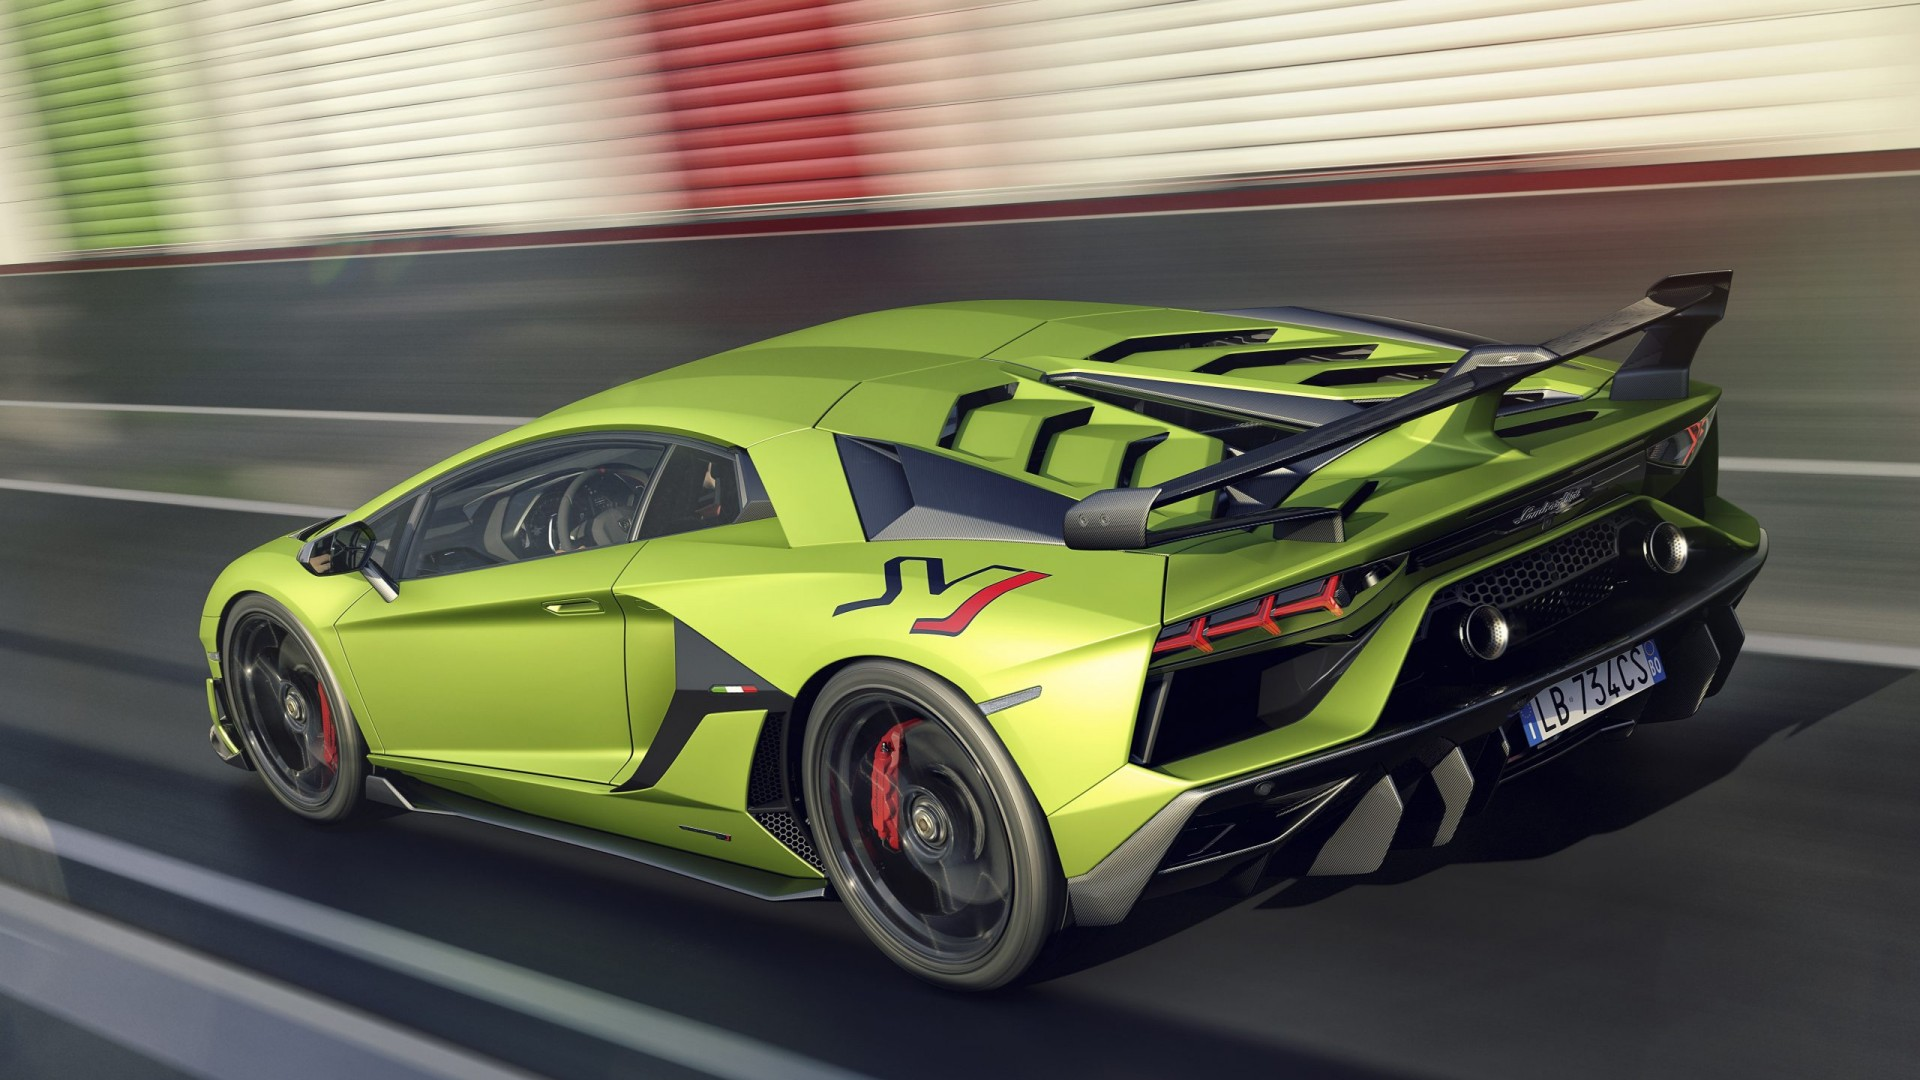 How Much Does A Lamborghini Veneno Cost >> Wallpaper Lamborghini Aventador SVJ, 2019 Cars, supercar, HD, Cars & Bikes #20241